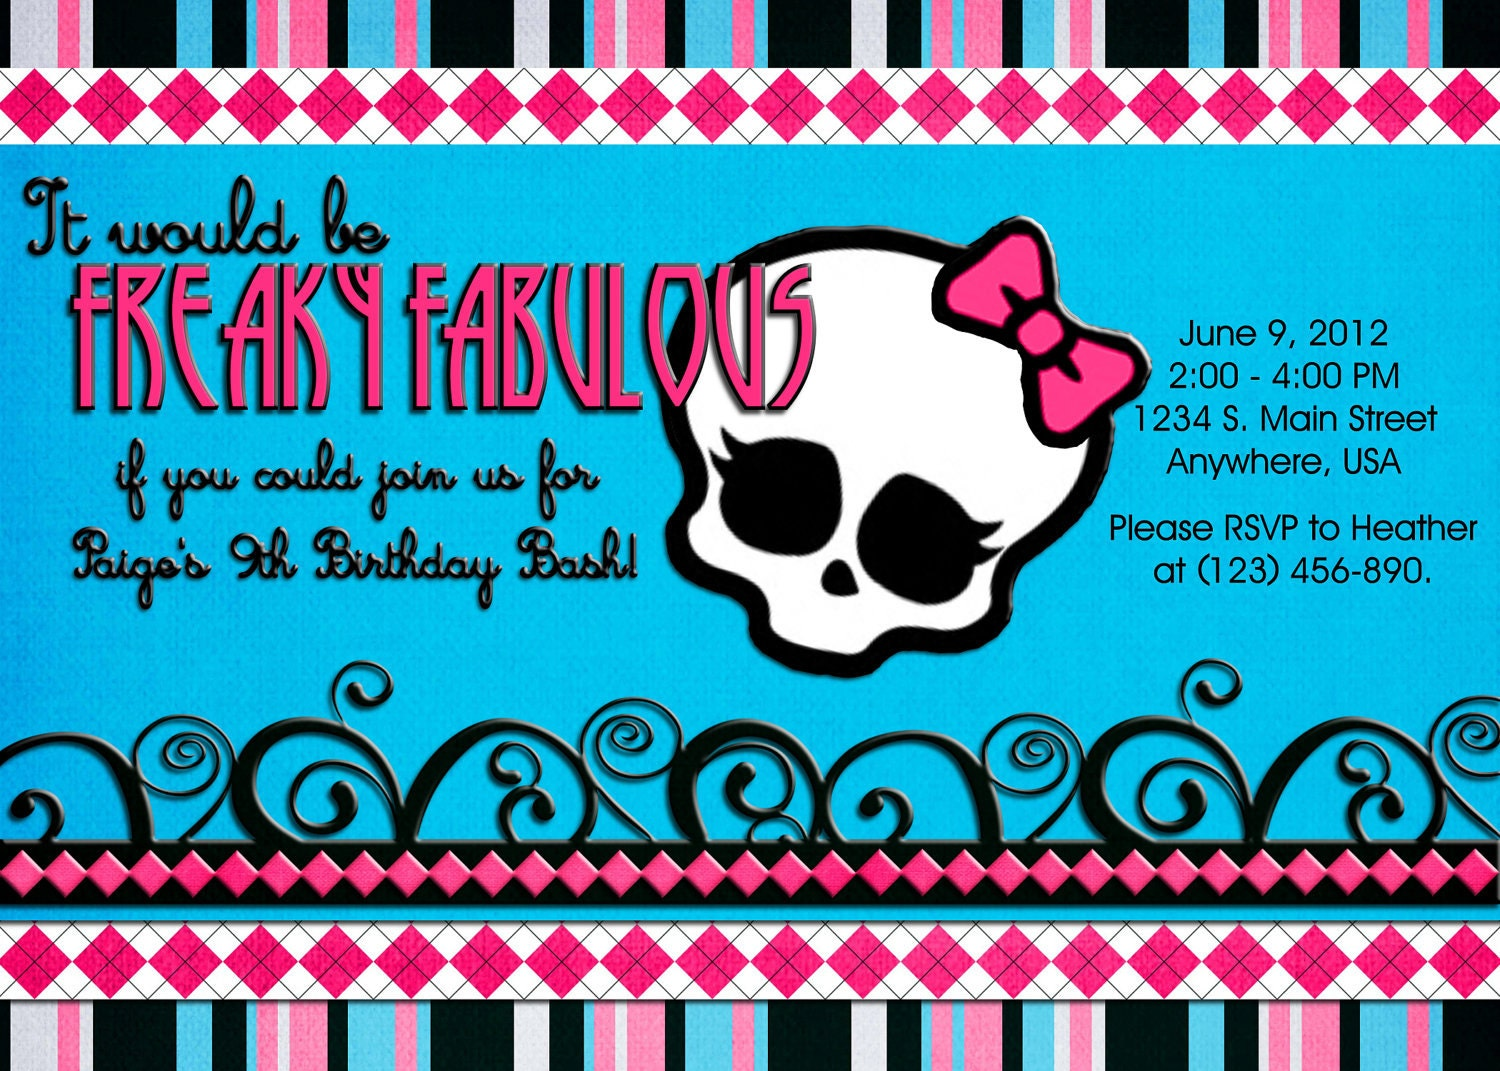 Monster High Party Invitations is the best ideas you have to choose for invitation example